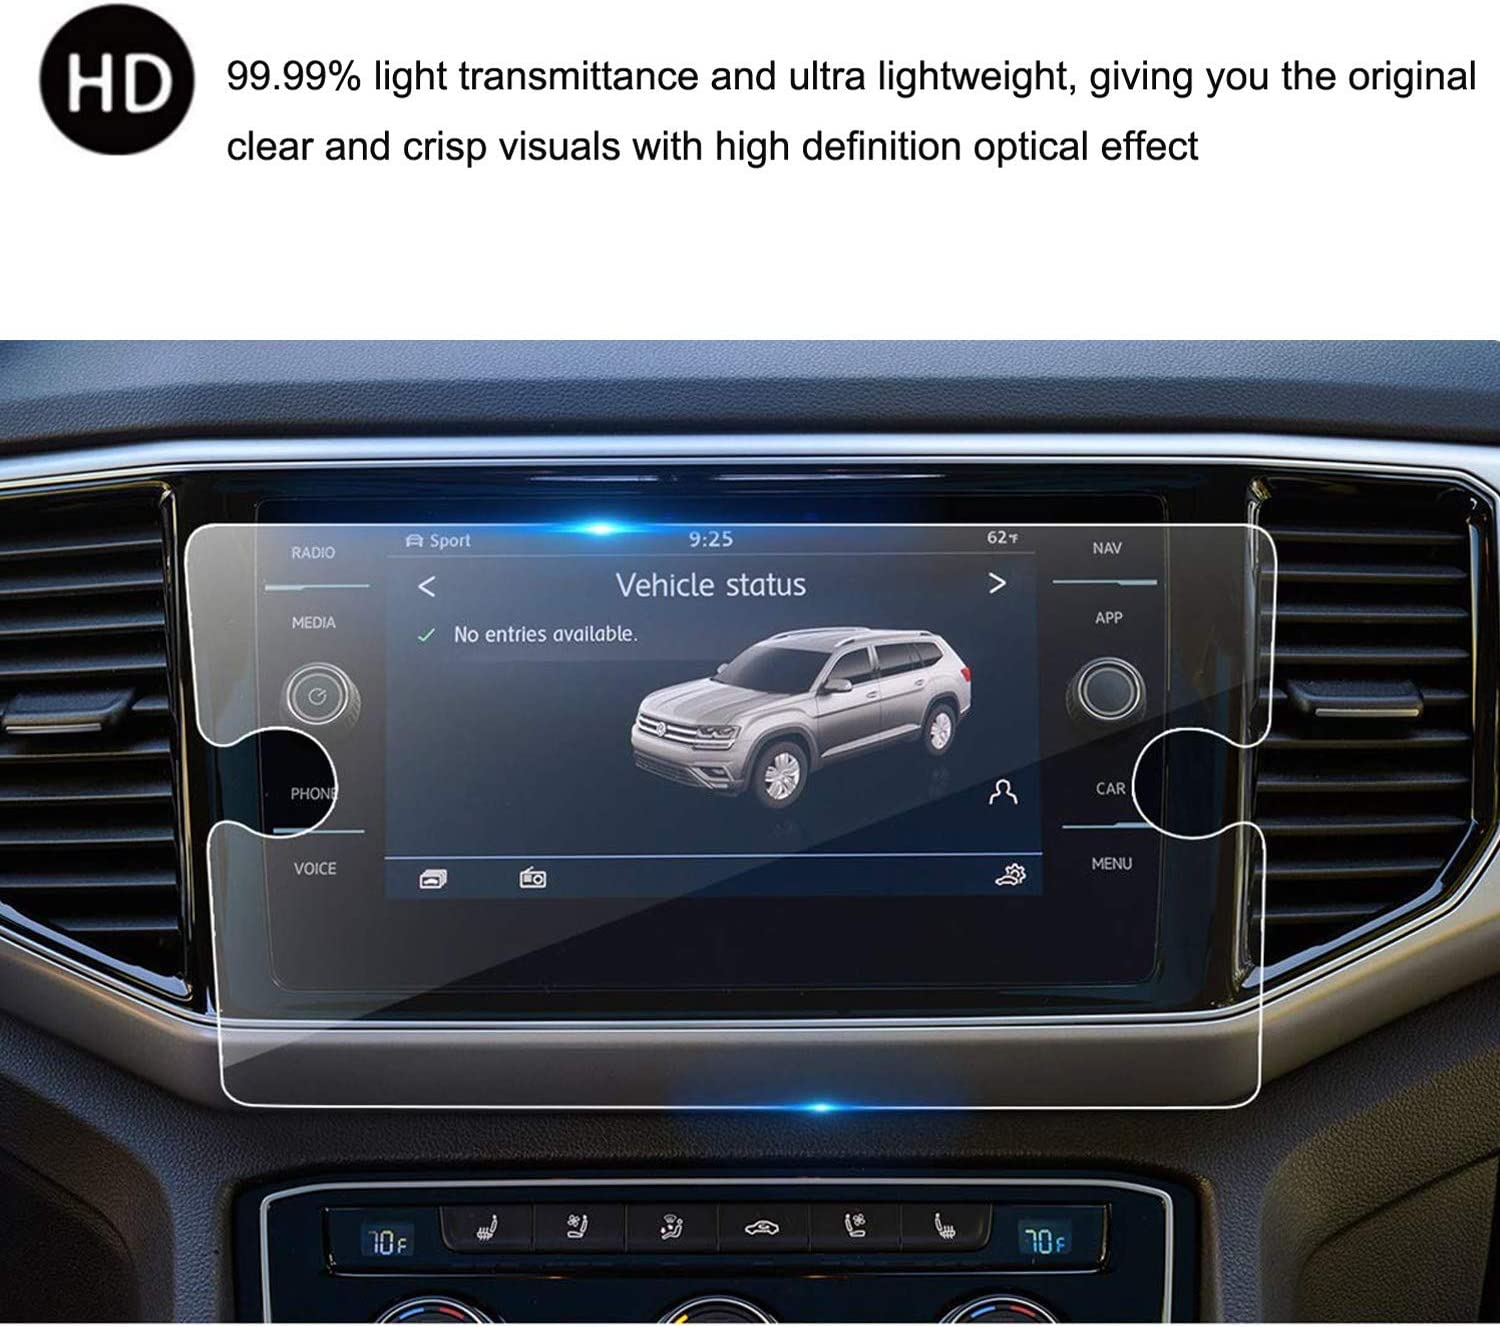 9H HeyMoly Compatible with 2018 Volkswagen Tiguan or Atlas 8 Inch Car Navigation Screen Protector, HD Tempered Glass Infotainment Center Touch Display Screen Protector